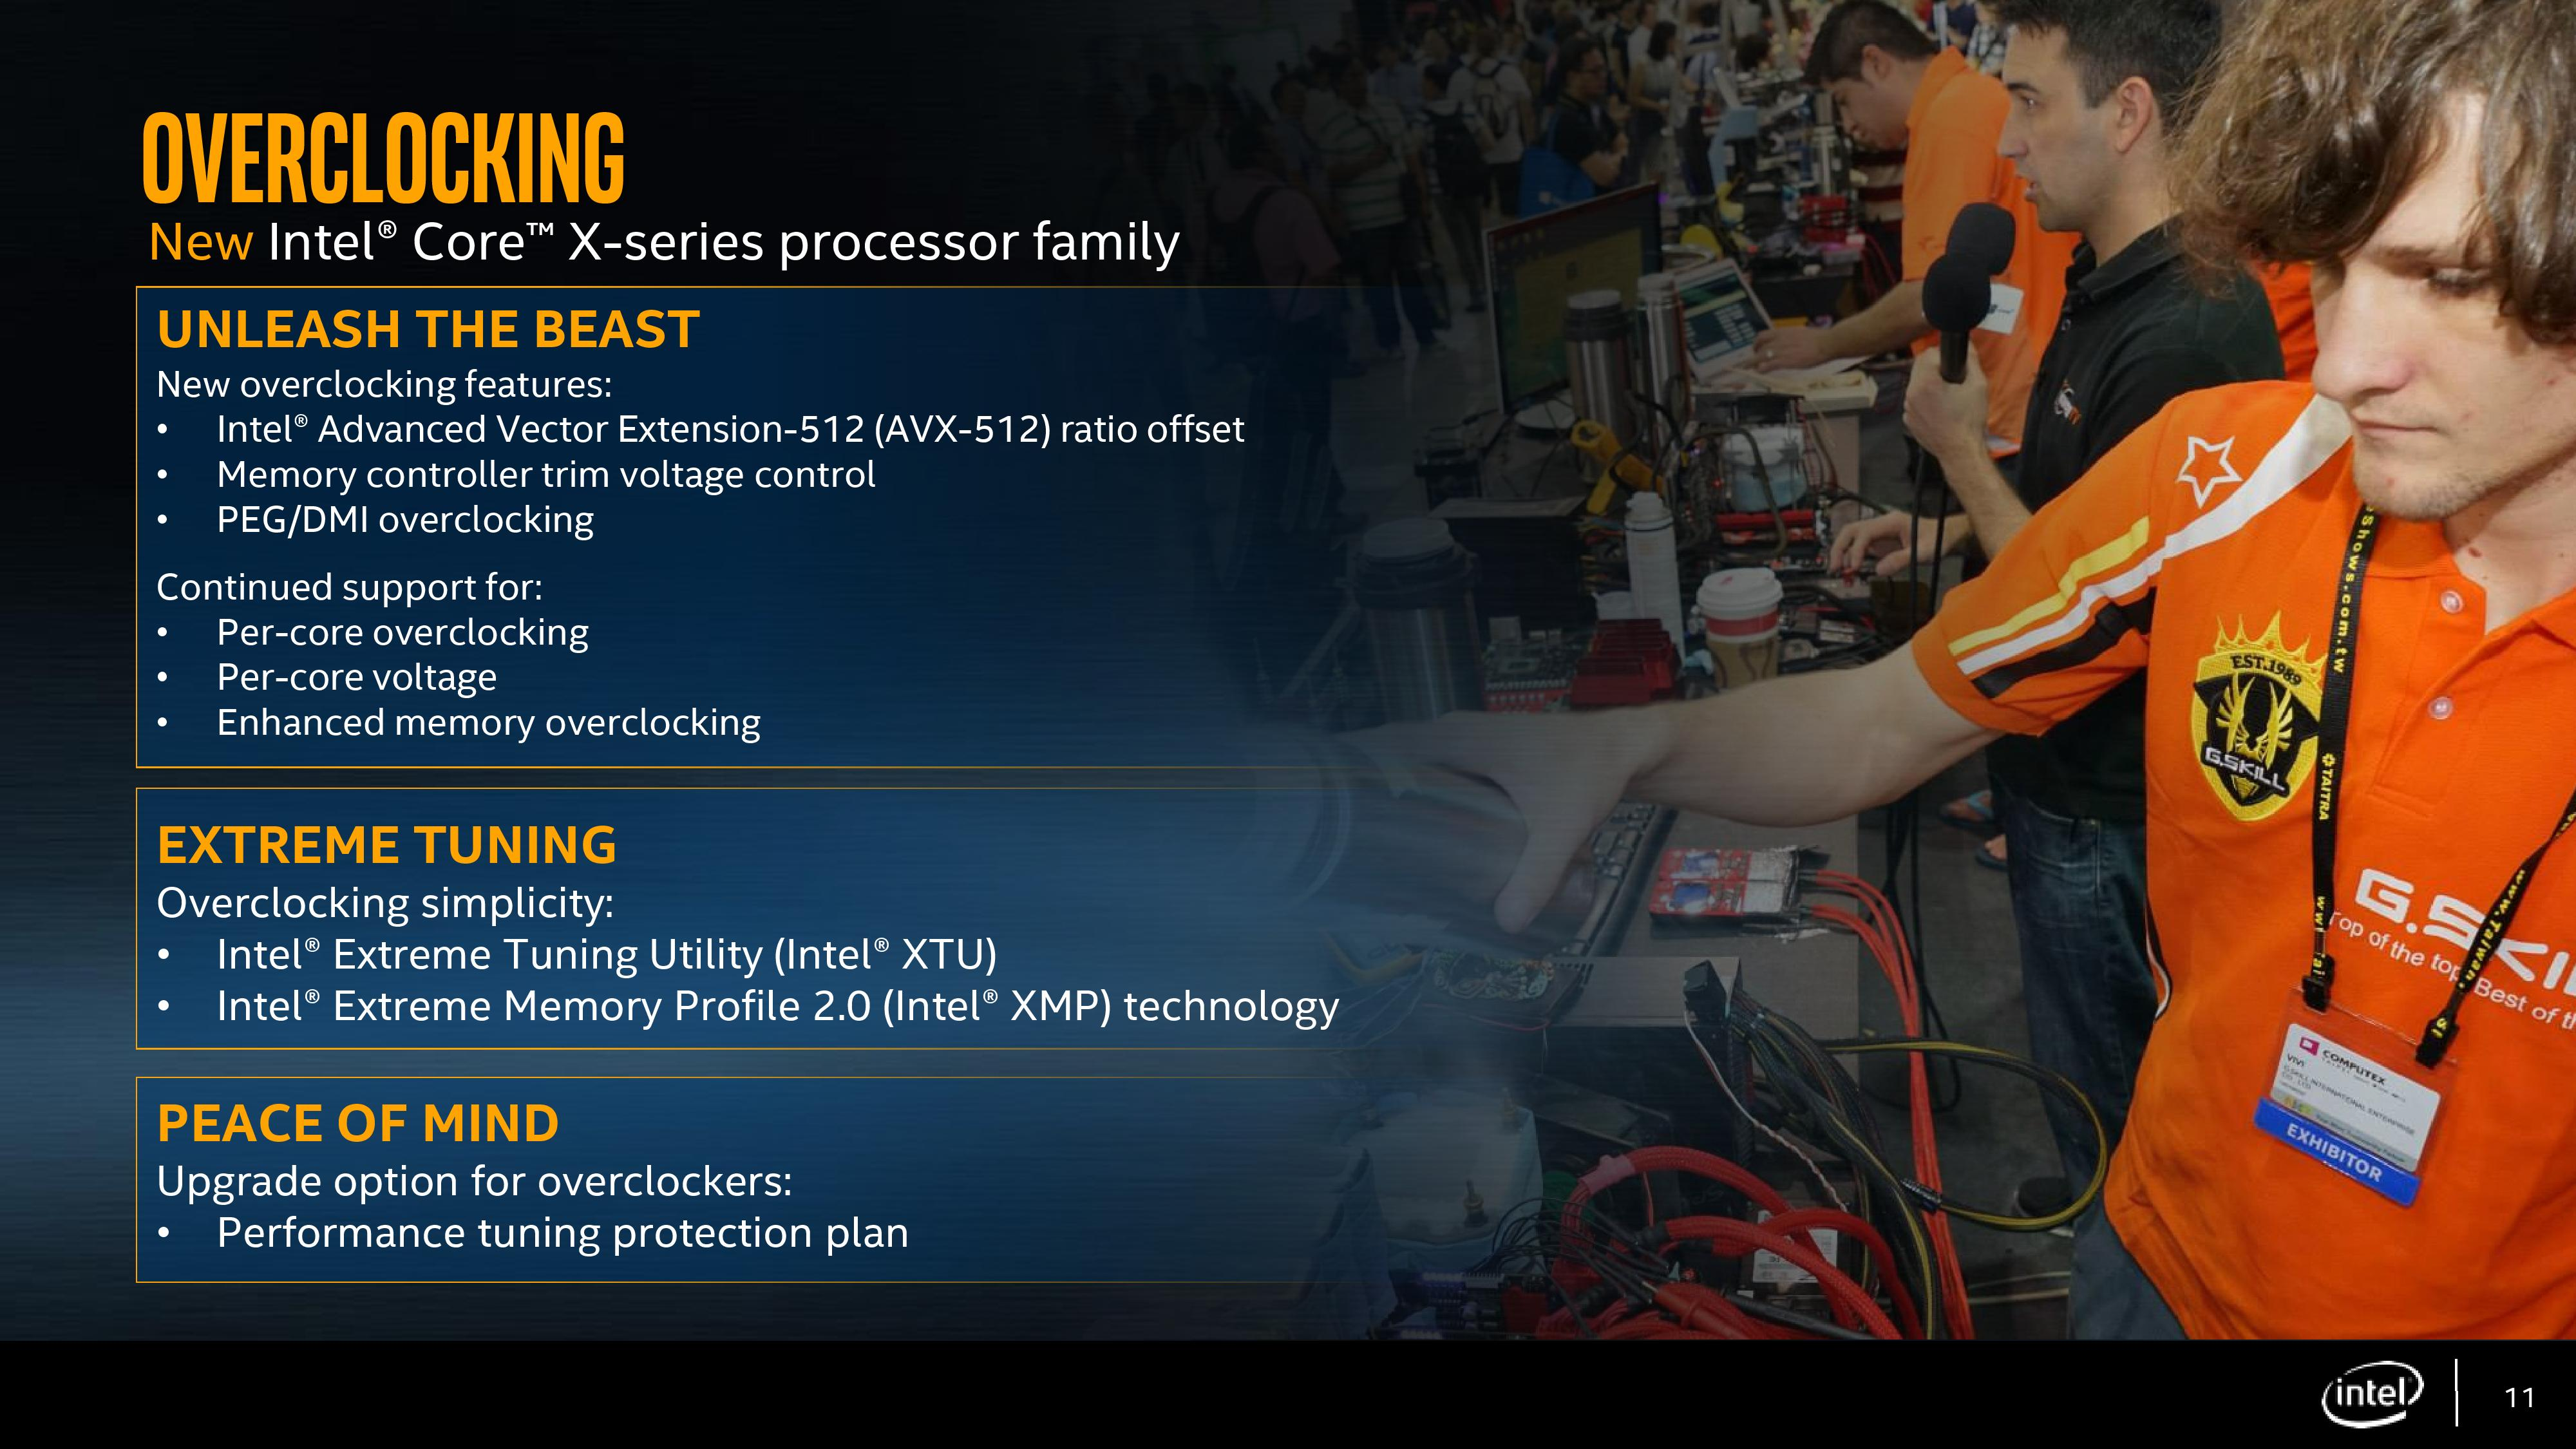 Intel Announces Basin Falls The New High End Desktop Platform And Block Diagram For X99 Chipset Perhaps A Final Note About X299 Based Motherboards All Will Support Overclocking On Cpu Dram With Multiplier Base Clock Frequency Adjustments